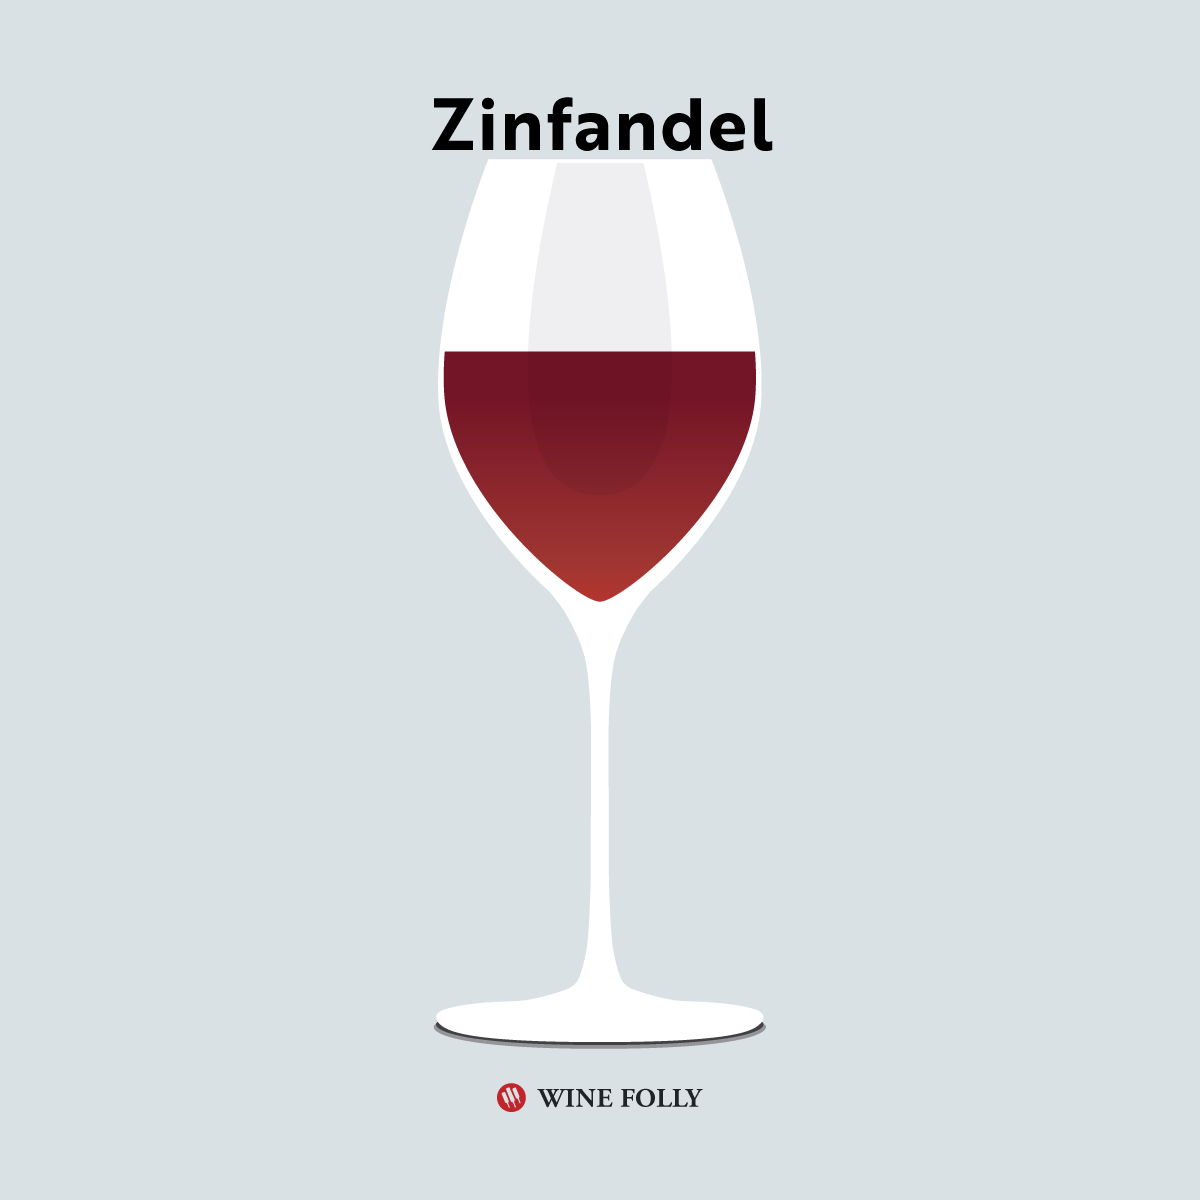 Red Zinfandel in a glass illustration by Wine Folly